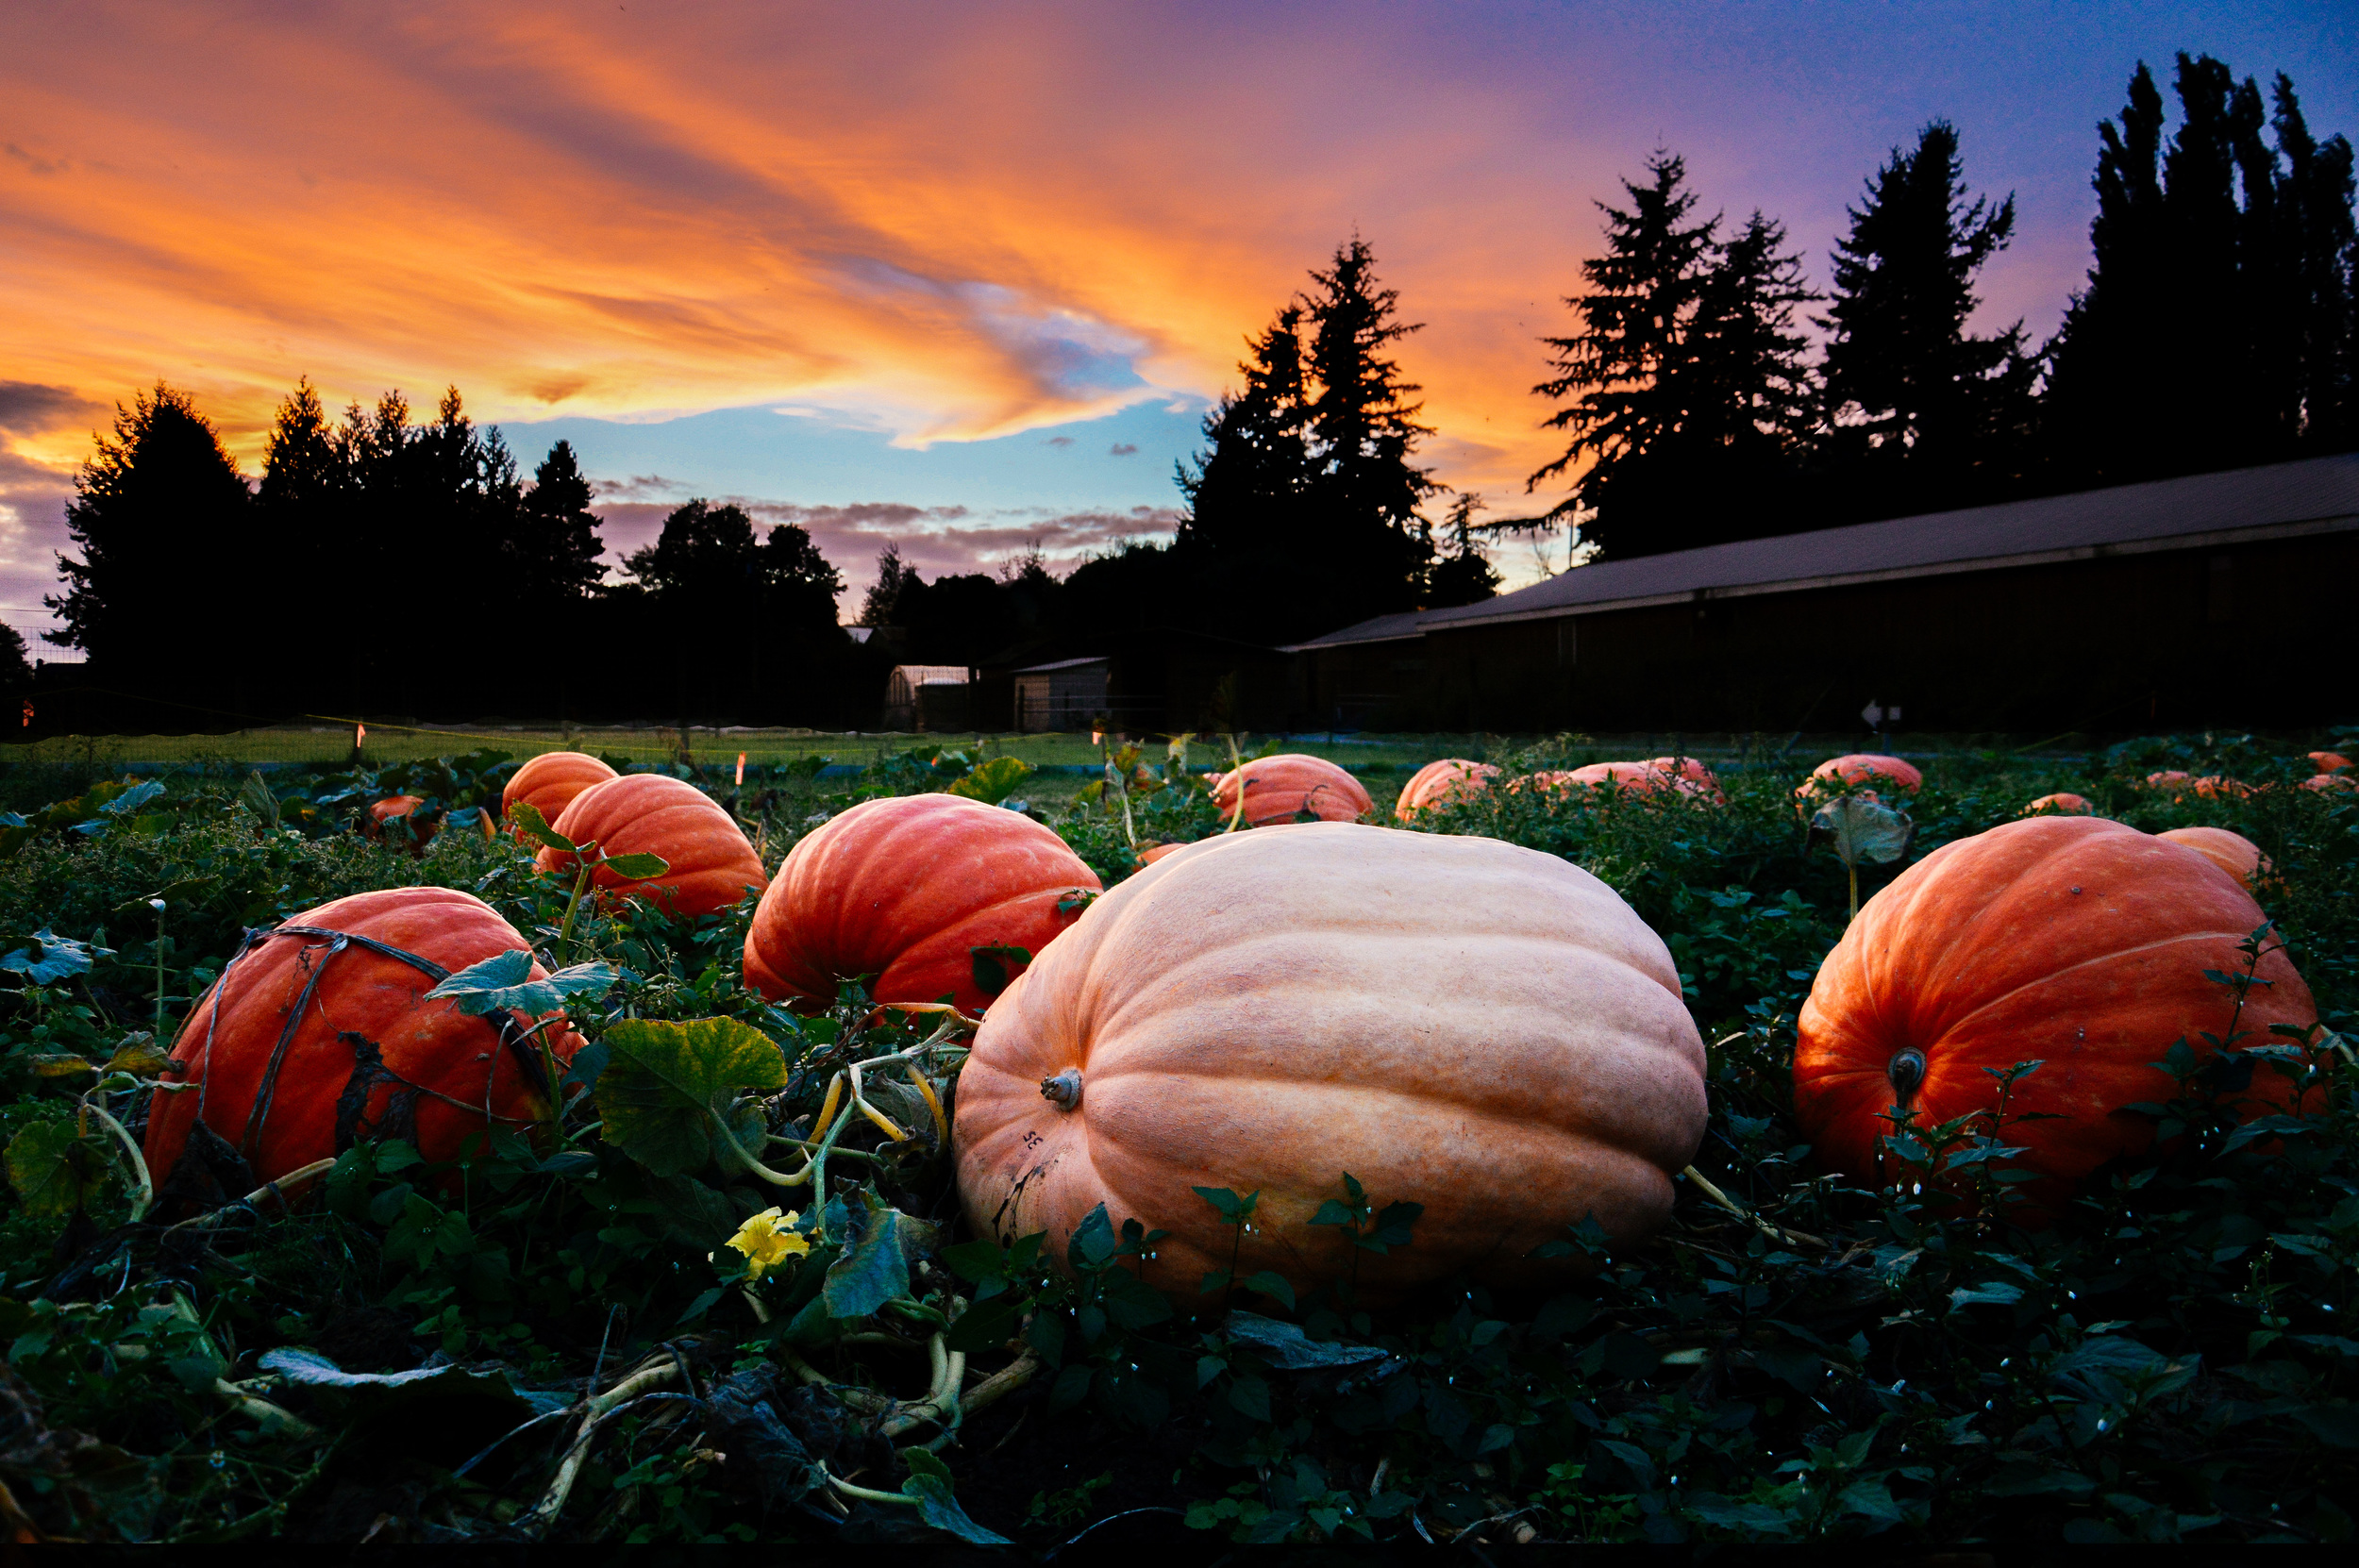 Sunset over the giant pumpkin patch, Fall 2014. Photo by: Kelsey Siemens